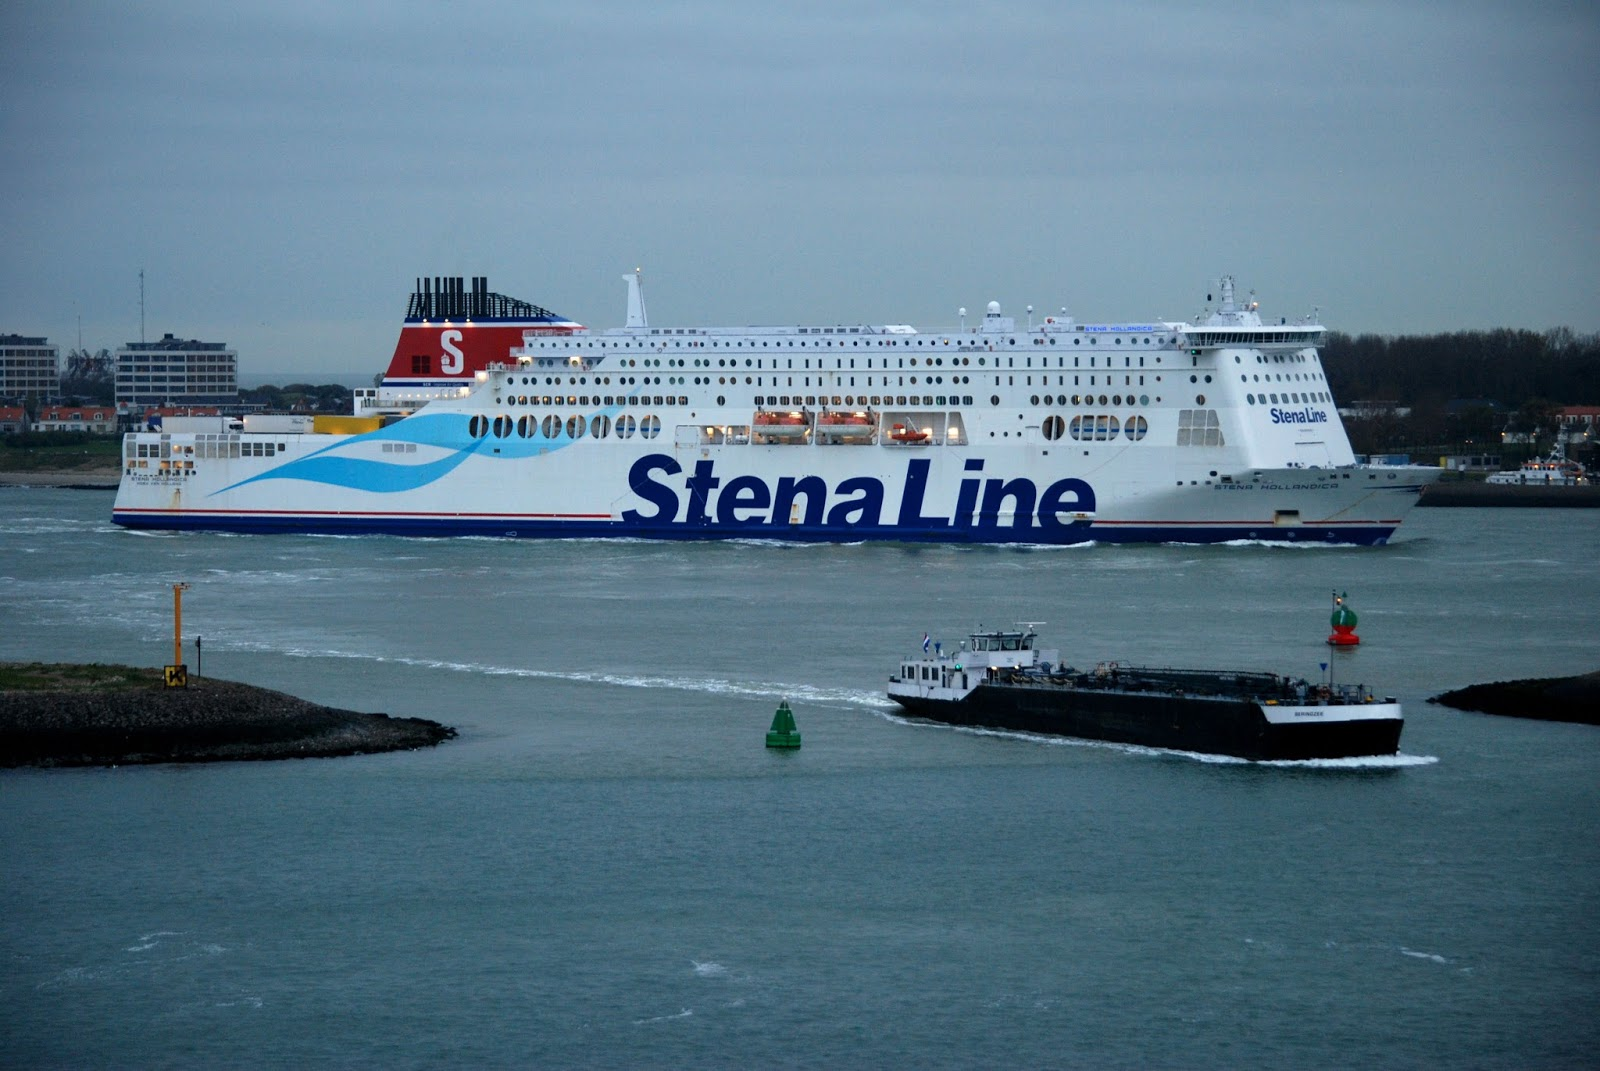 vmf-alifesailingcruiseferries blogspot co uk: STENA